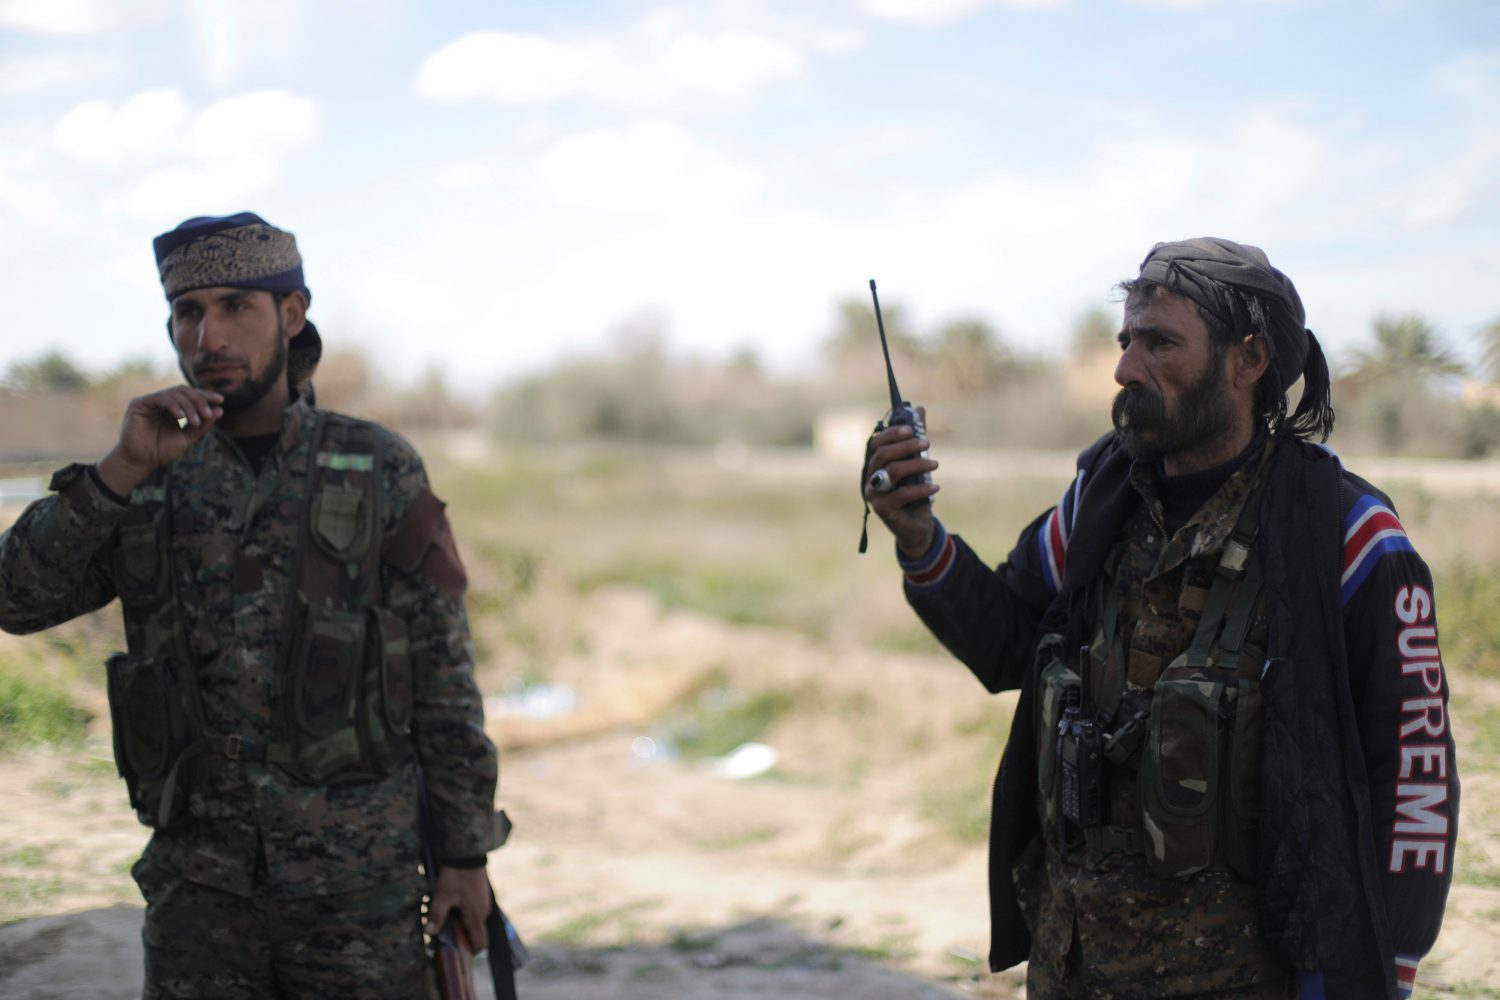 FILE PHOTO: A fighter of Syrian Democratic Forces (SDF) holds a walkie-talkie in Baghouz, Deir Al Zor province, Syria March 3, 2019. REUTERS/Rodi Said